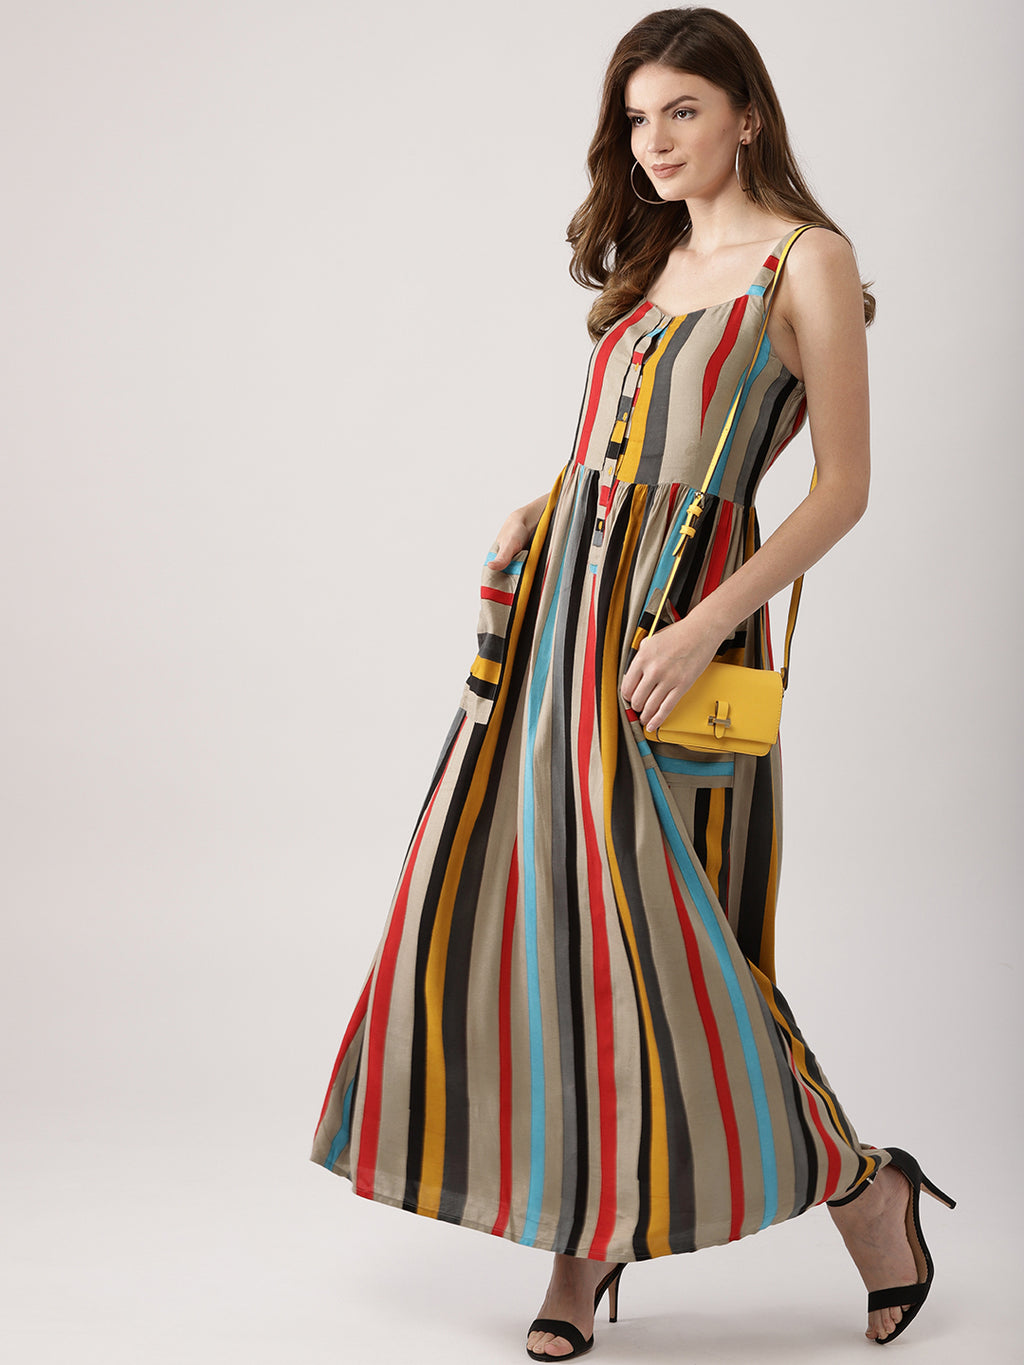 Women Multicoloured Striped Maxi Dress (Fully Stitched) | Znx4ever.com